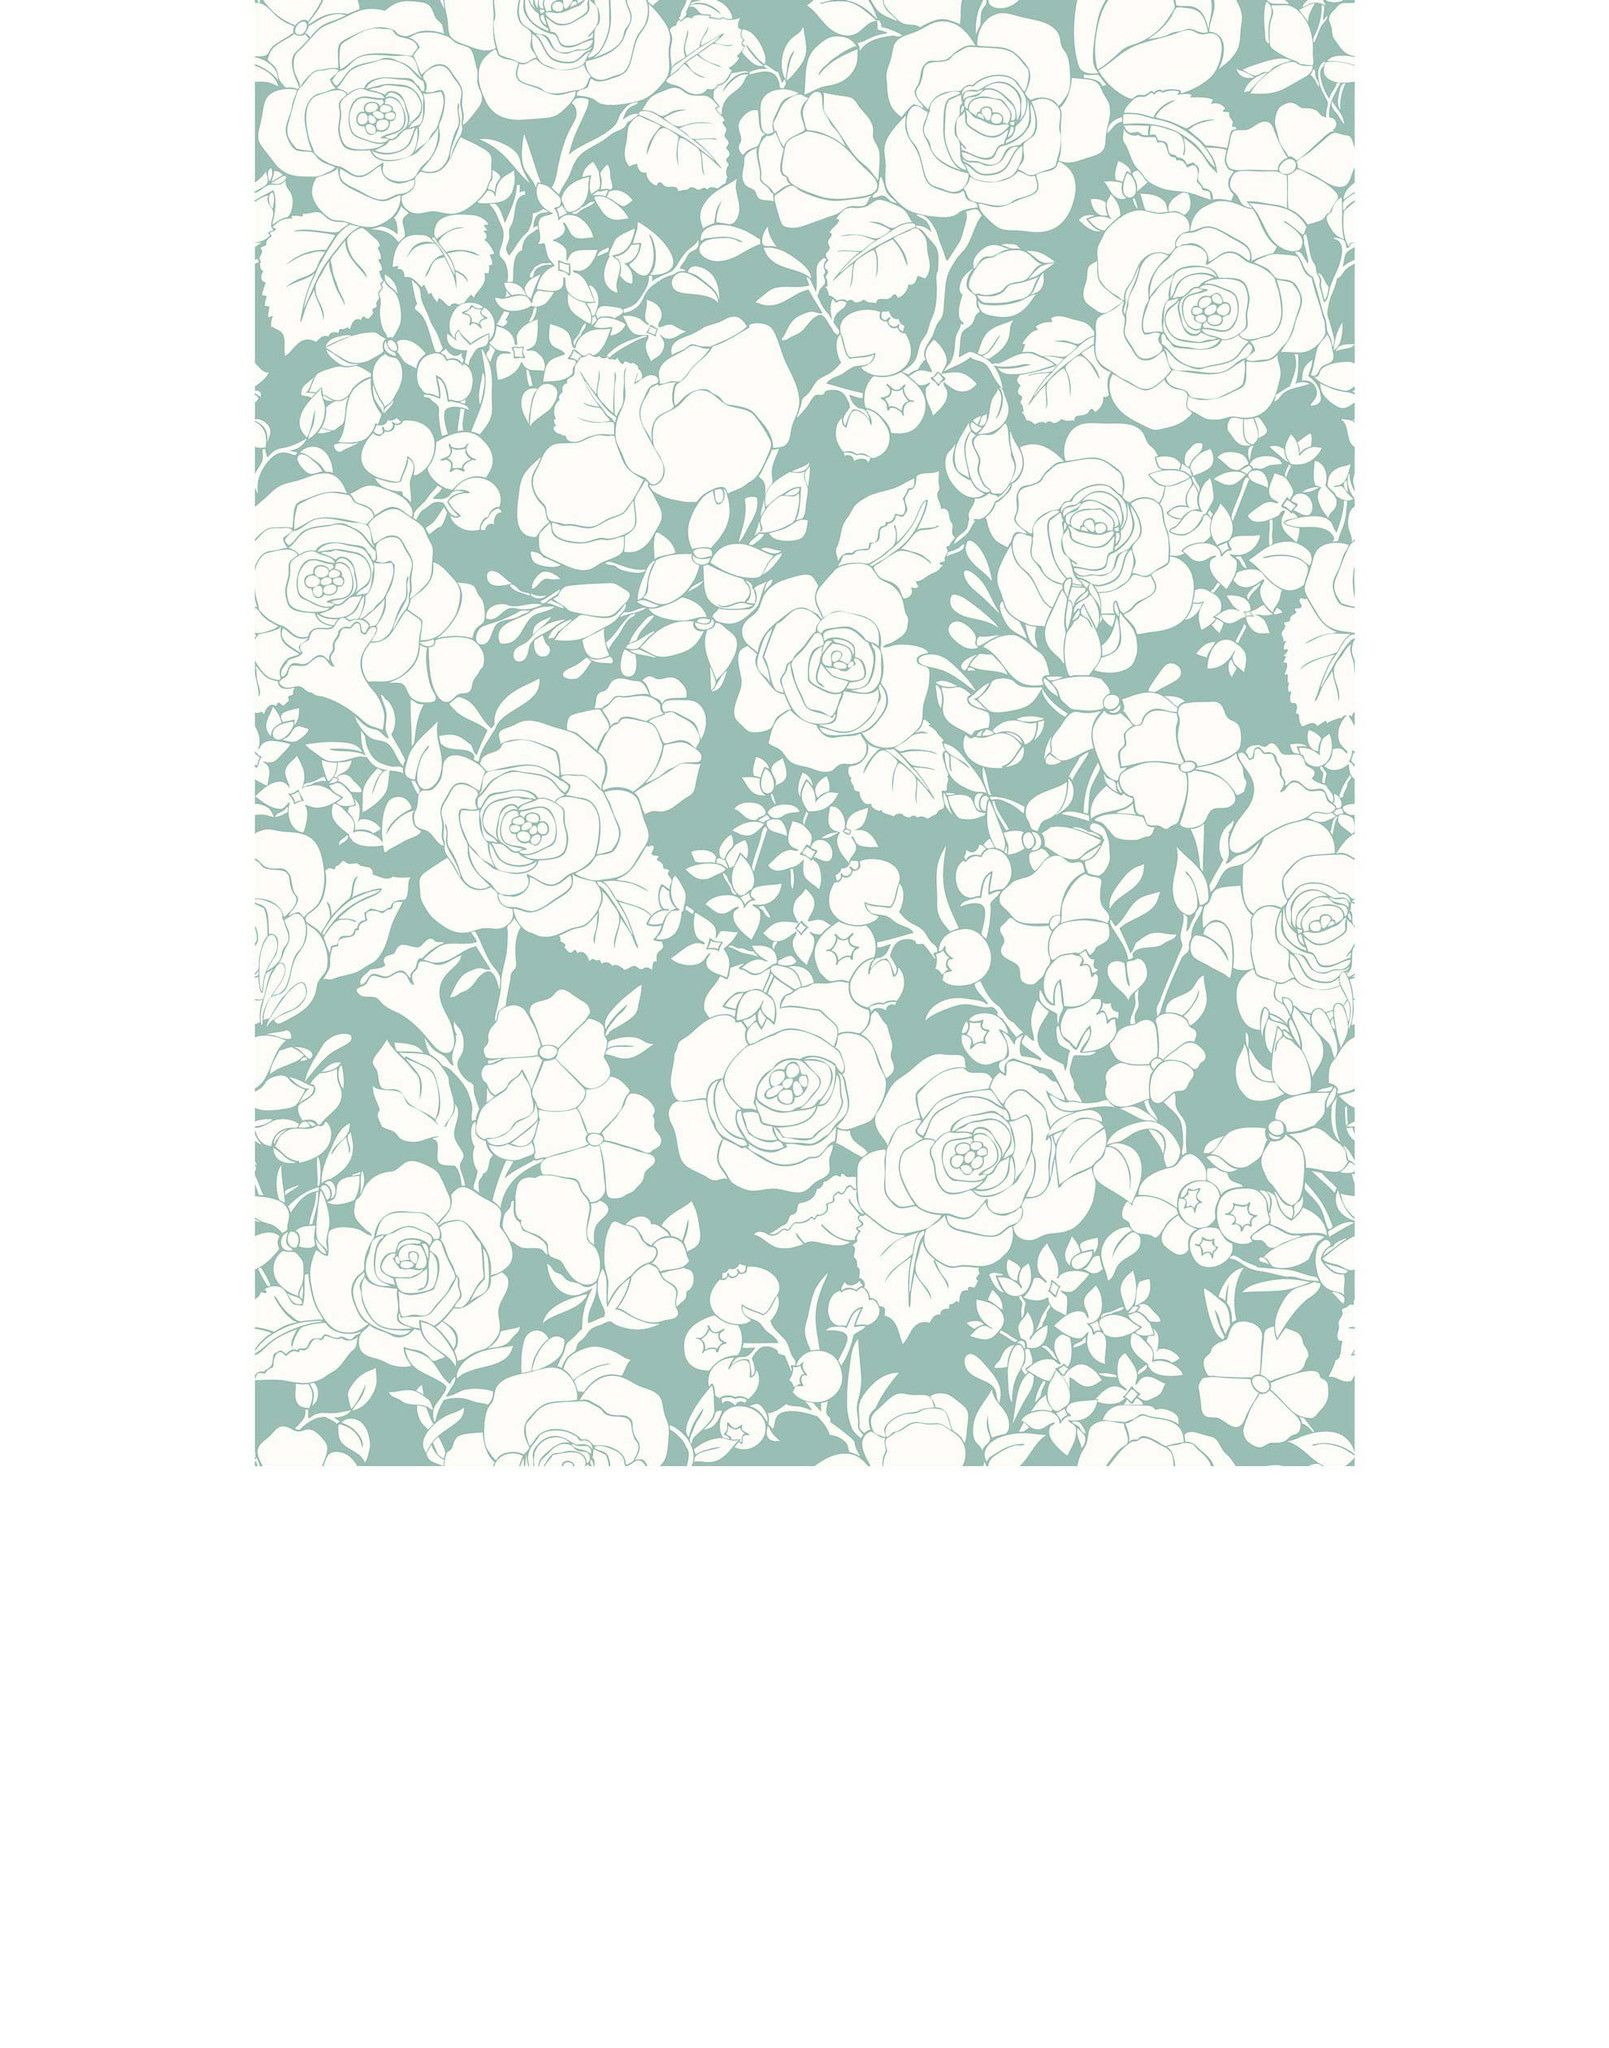 Removable Wallpaper Garden (Mint) Tile from Hygge Small